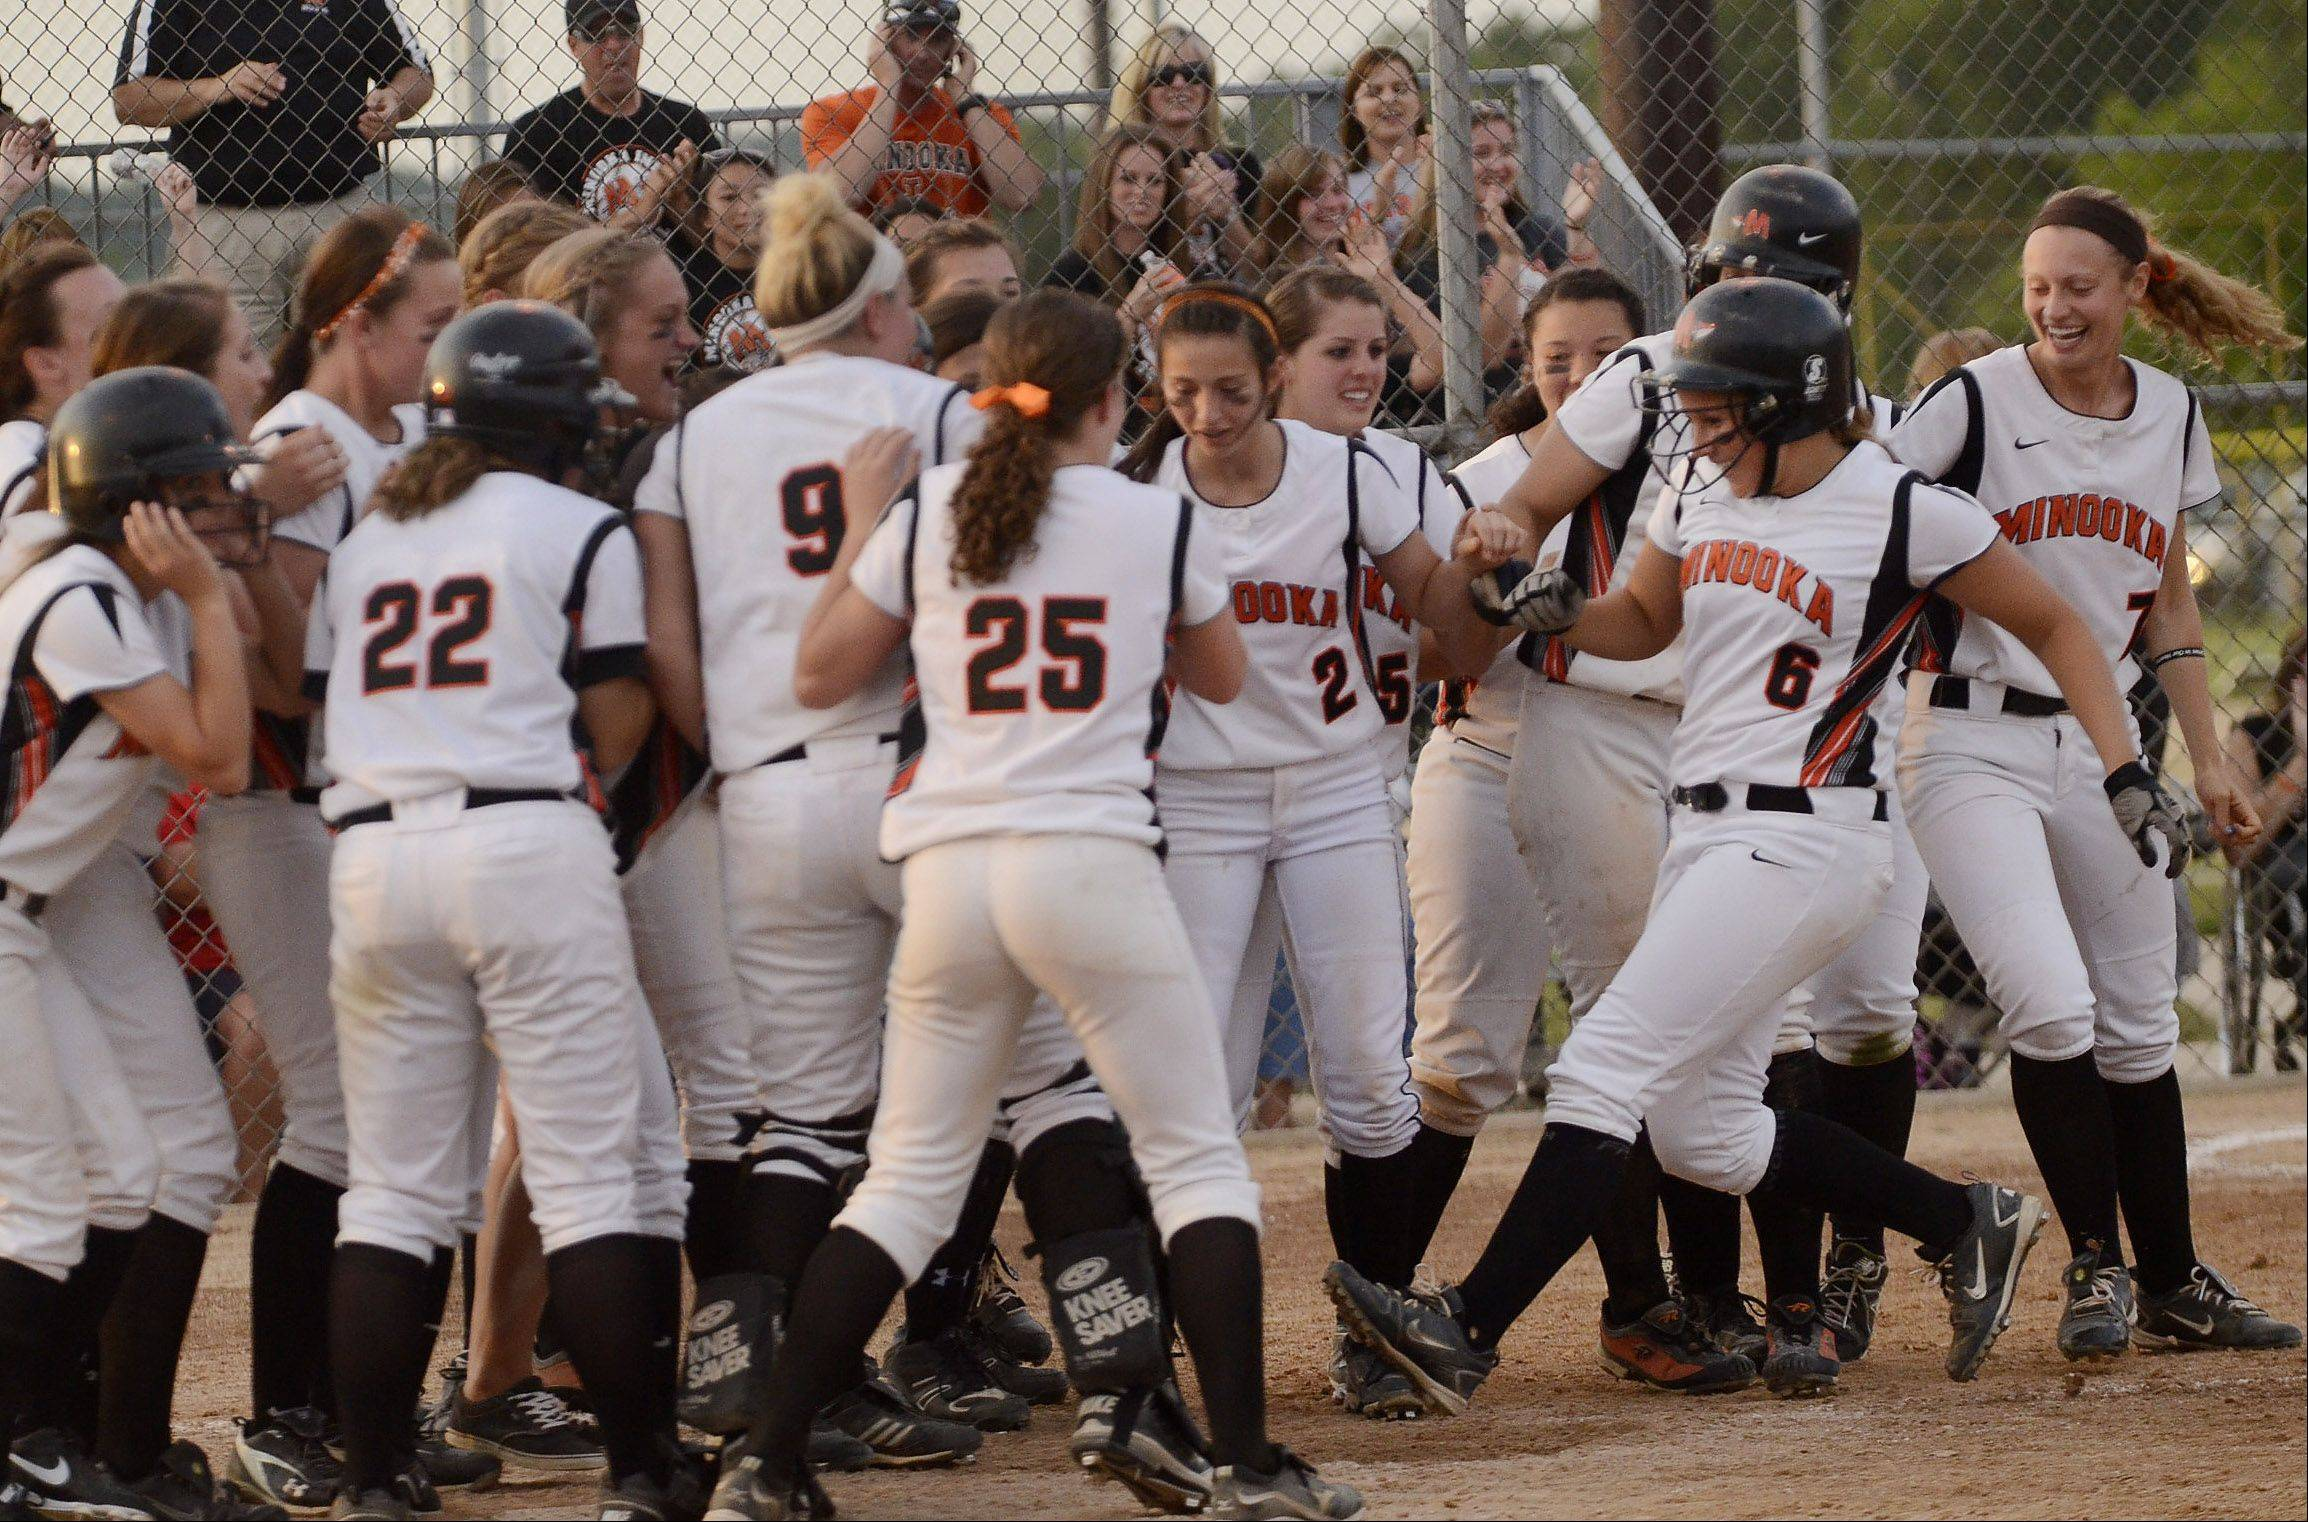 Minooka's Rachel May celebrates with teammates after hitting the game winning home run against St. Charles East in the Class 4A softball championship game.